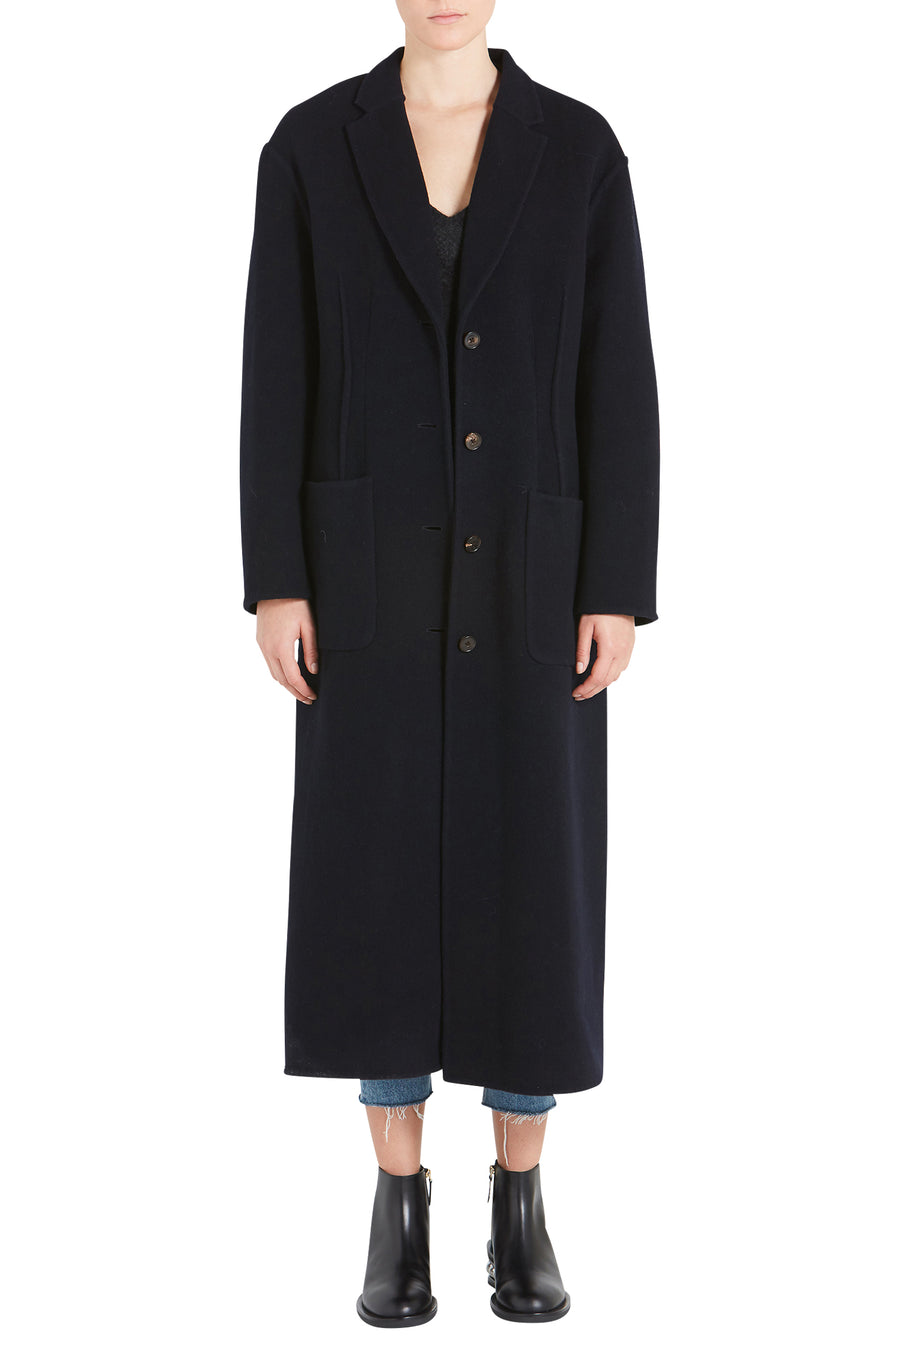 DOUBLE FACED TAILORED COAT